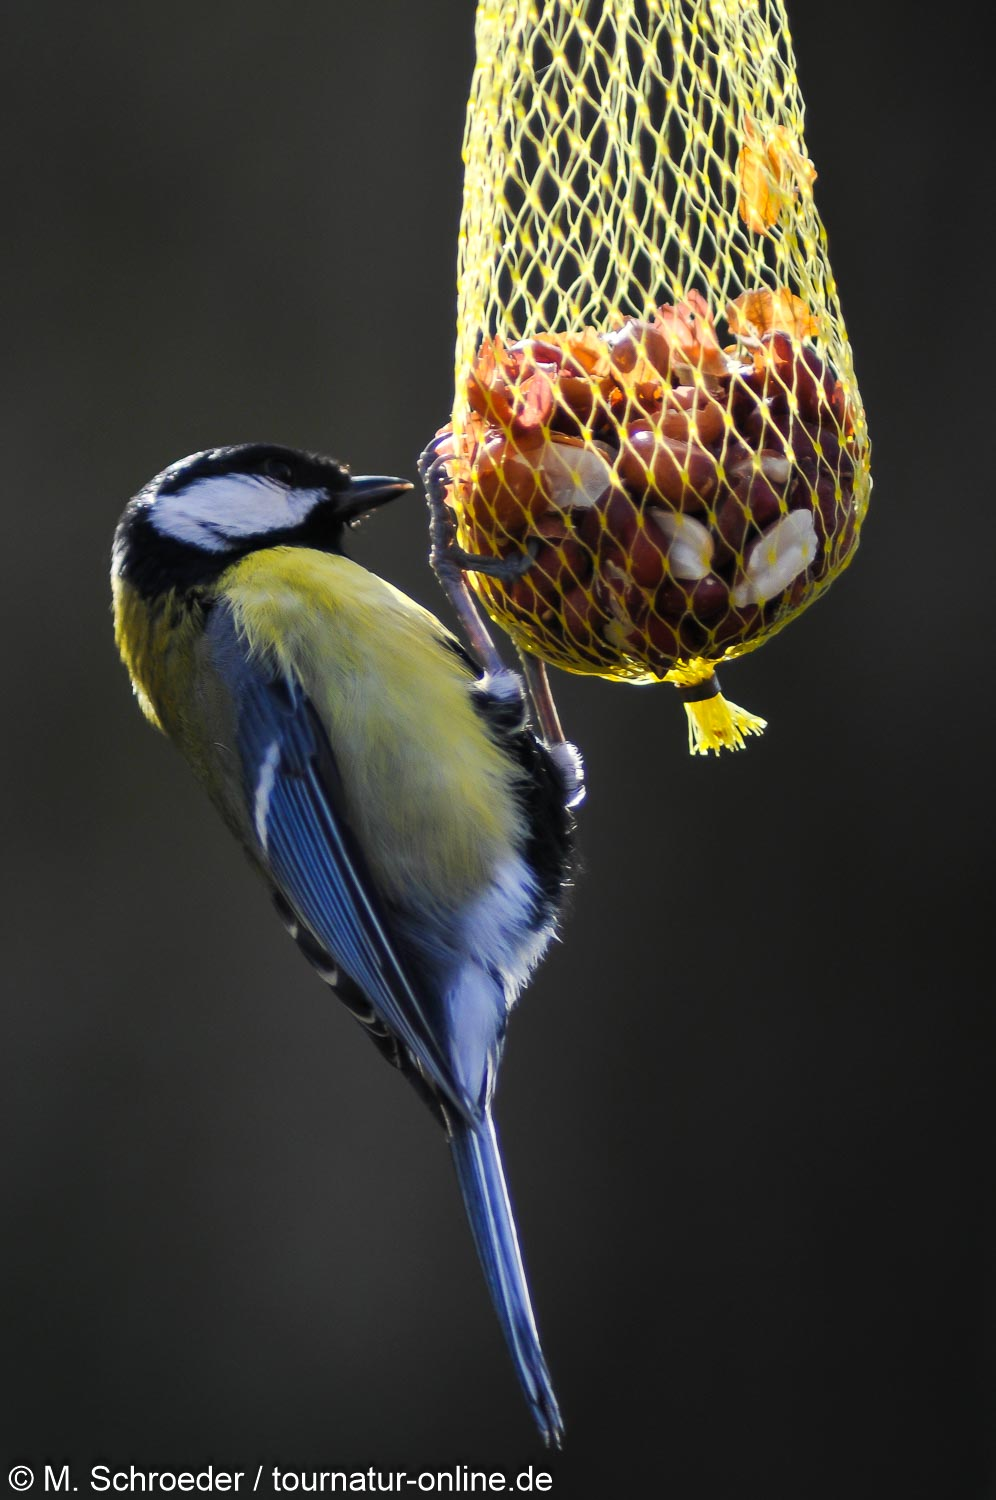 Kohlmeise - great tit (Parus major)